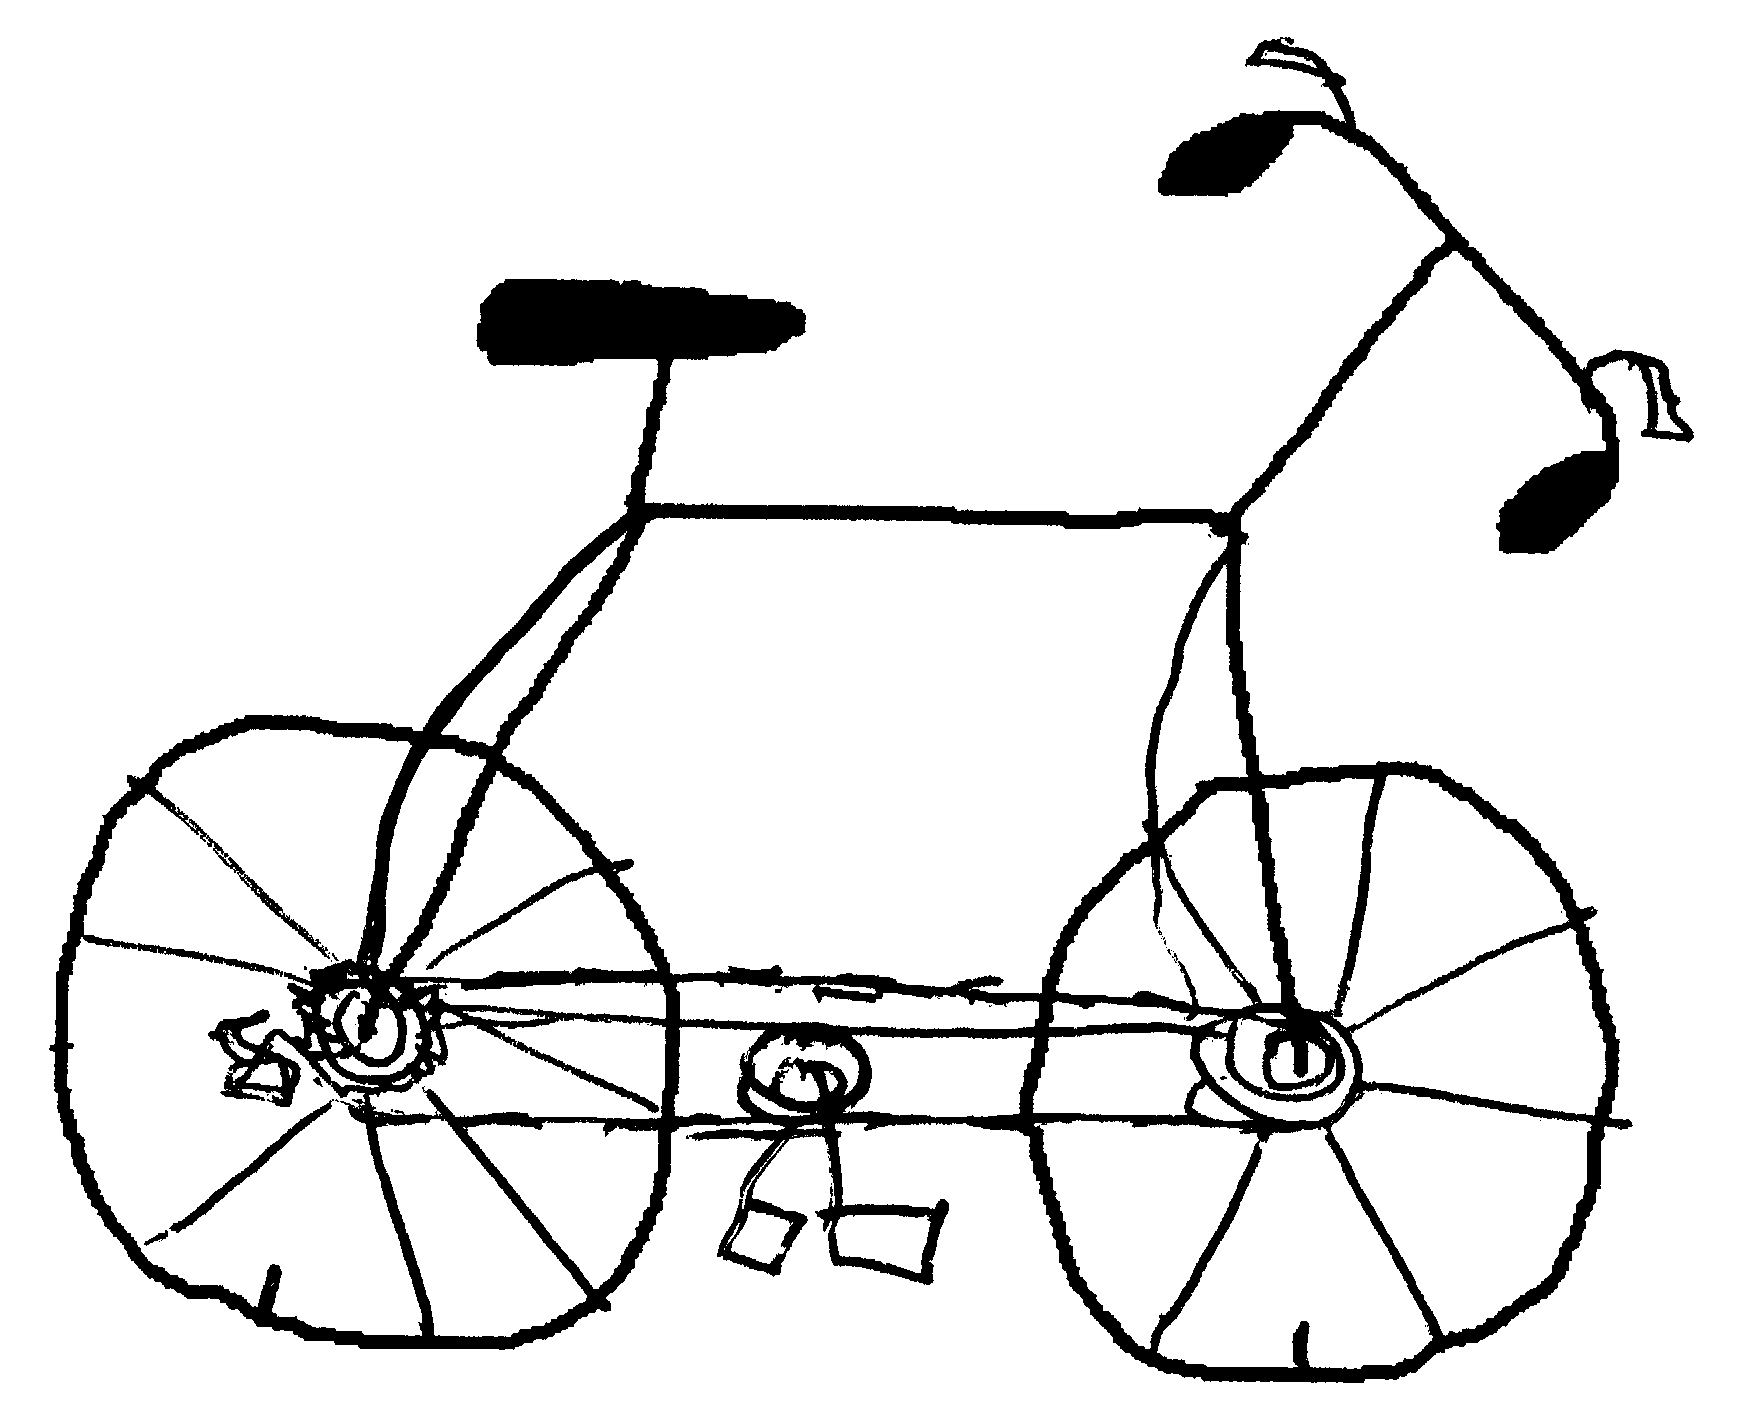 cycle sketch free how to draw a bike for kids download free clip art cycle sketch